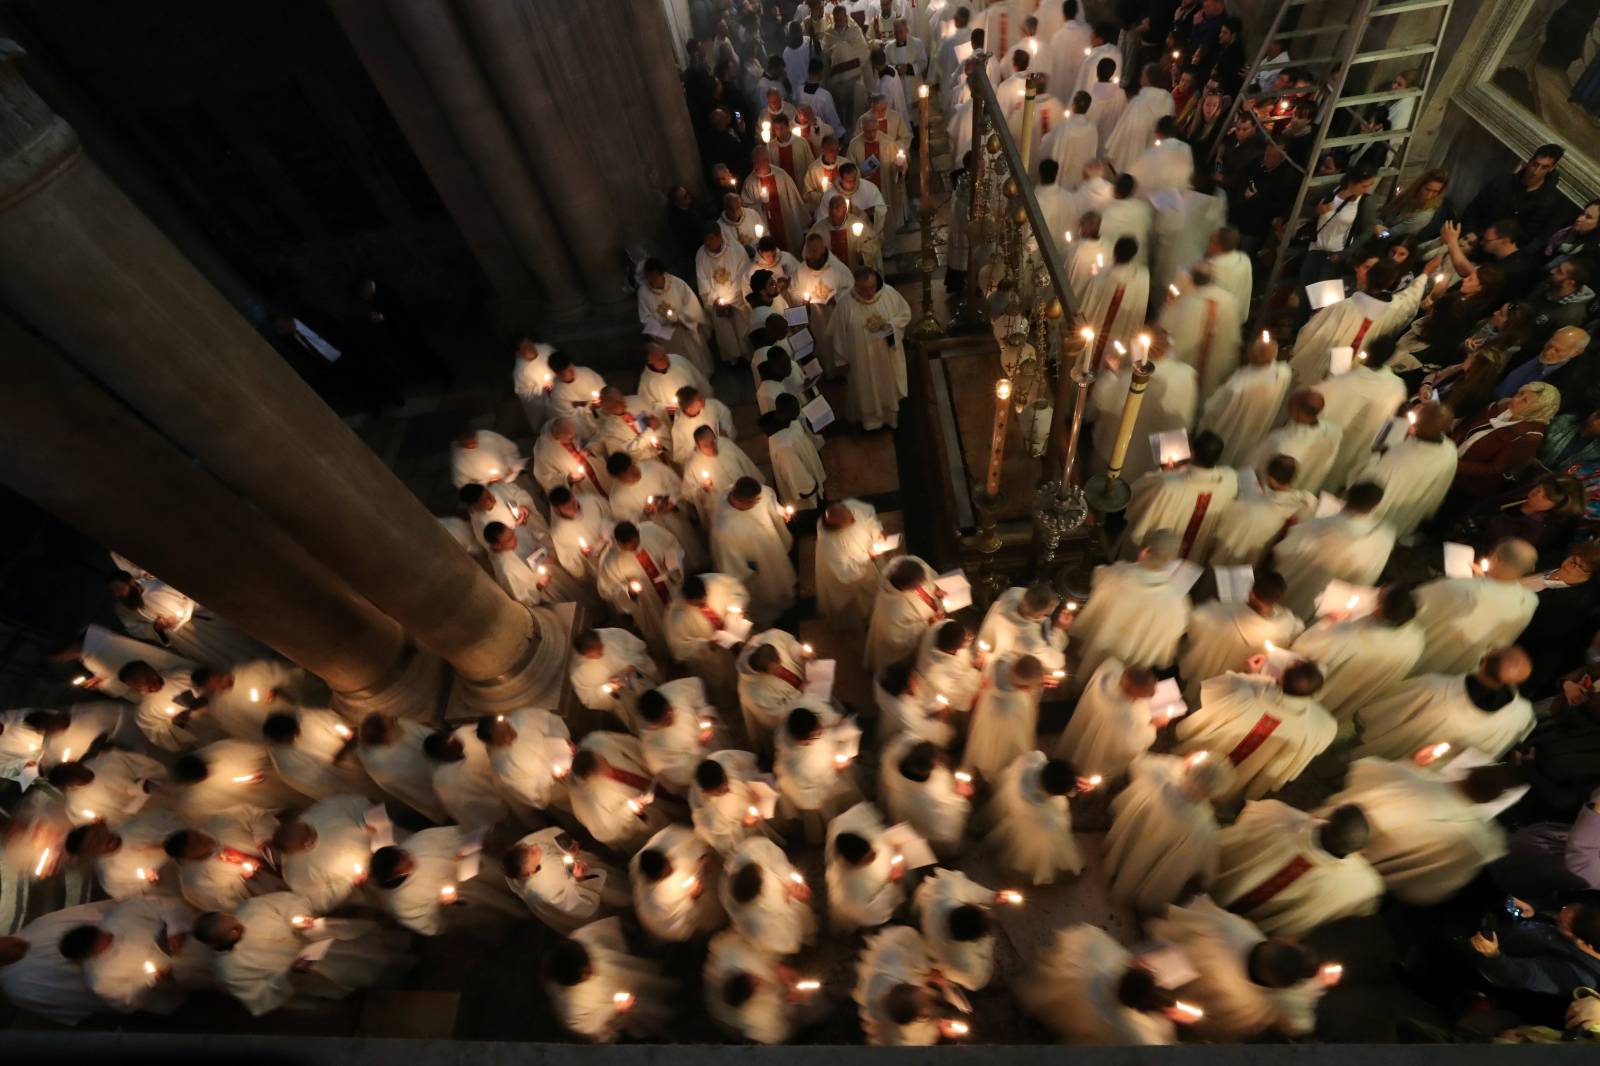 Worshippers take part in a procession during the Catholic Washing of the Feet ceremony on Easter Holy Week in the Church of the Holy Sepulchre in Jerusalem's Old City